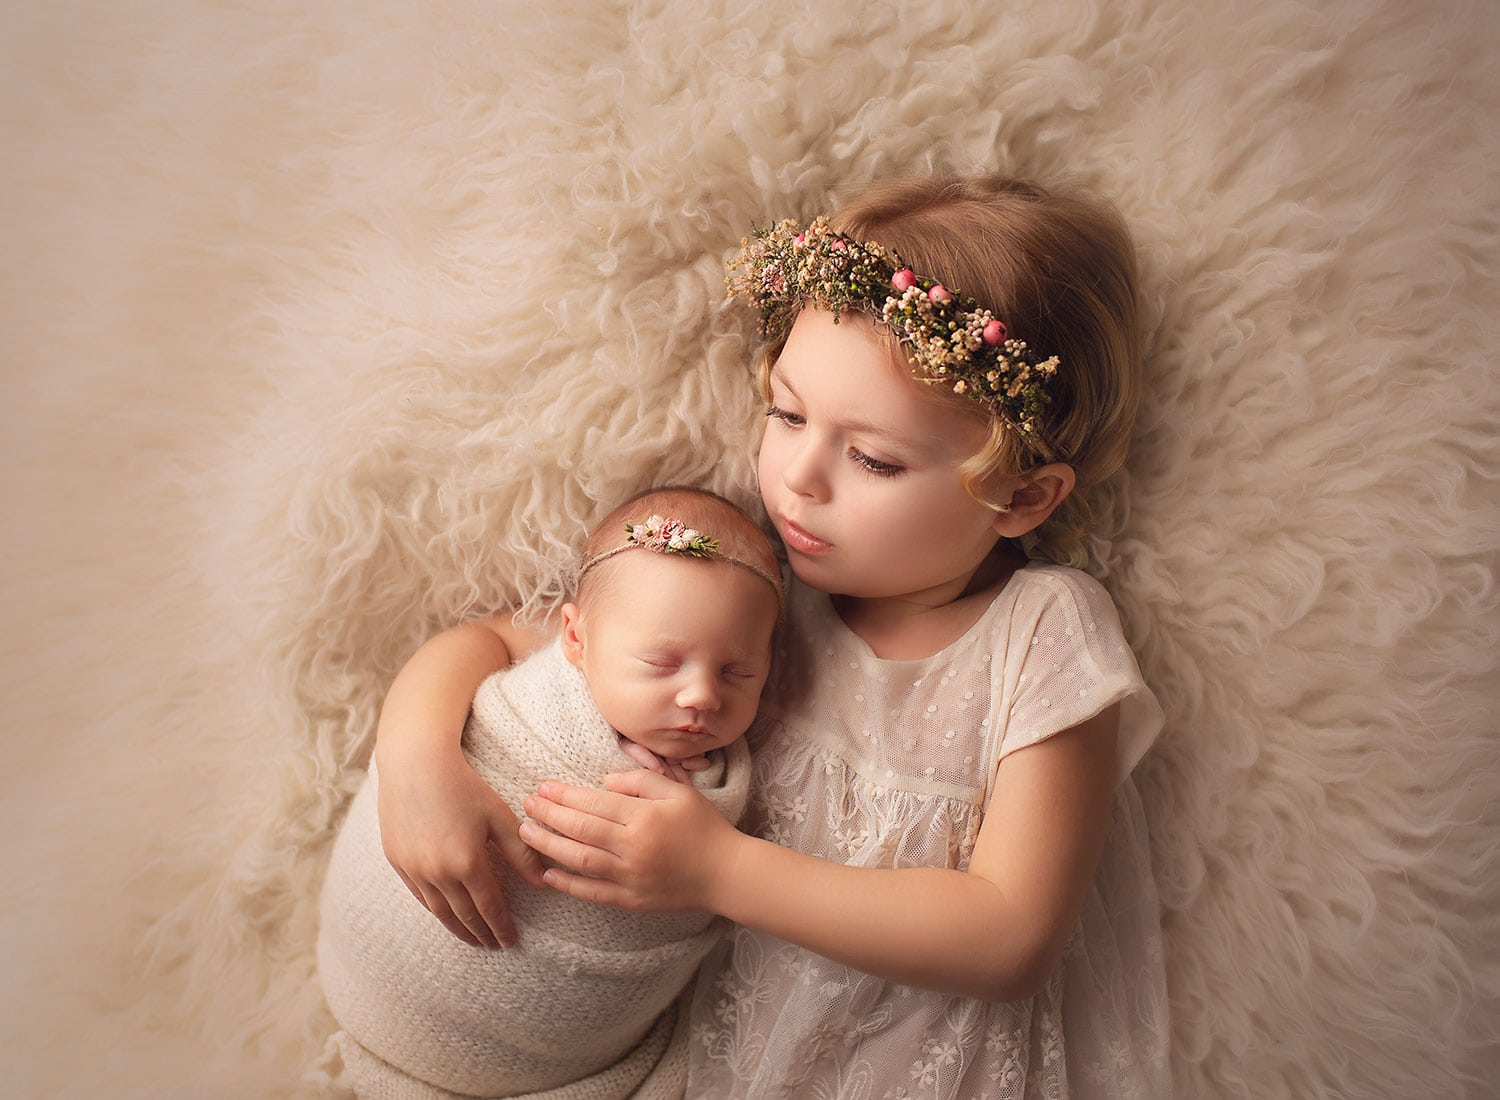 Big sister in pink flower crown holding little sister.